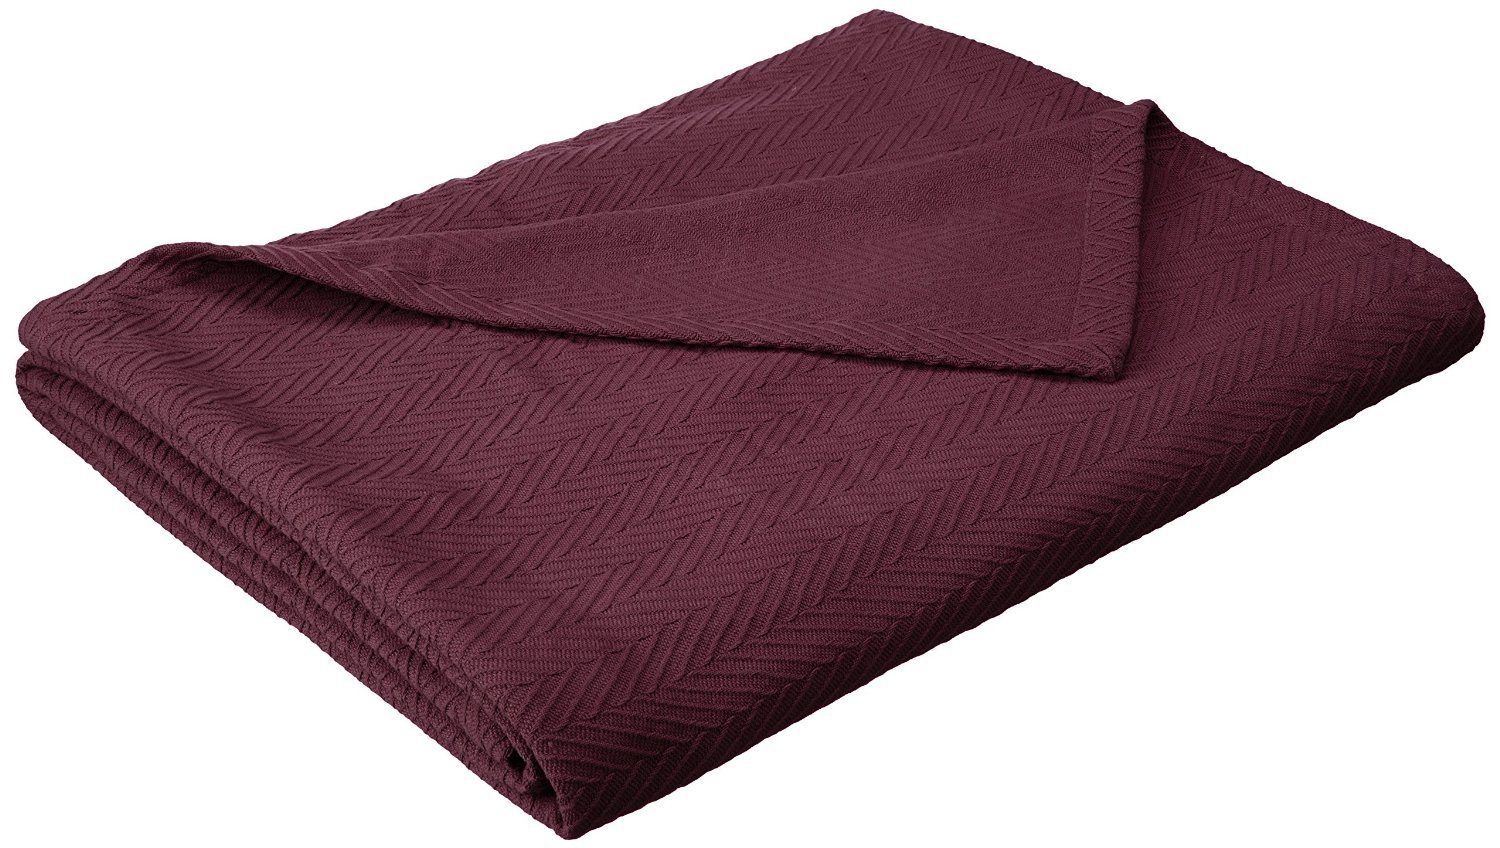 Superior 100% Cotton Thermal Blanket, Soft and Breathable Cotton for All Seasons, Bed Blanket and Oversized Throw Blanket with Metro Herringbone Weave Pattern - Full/Queen Size, Plum